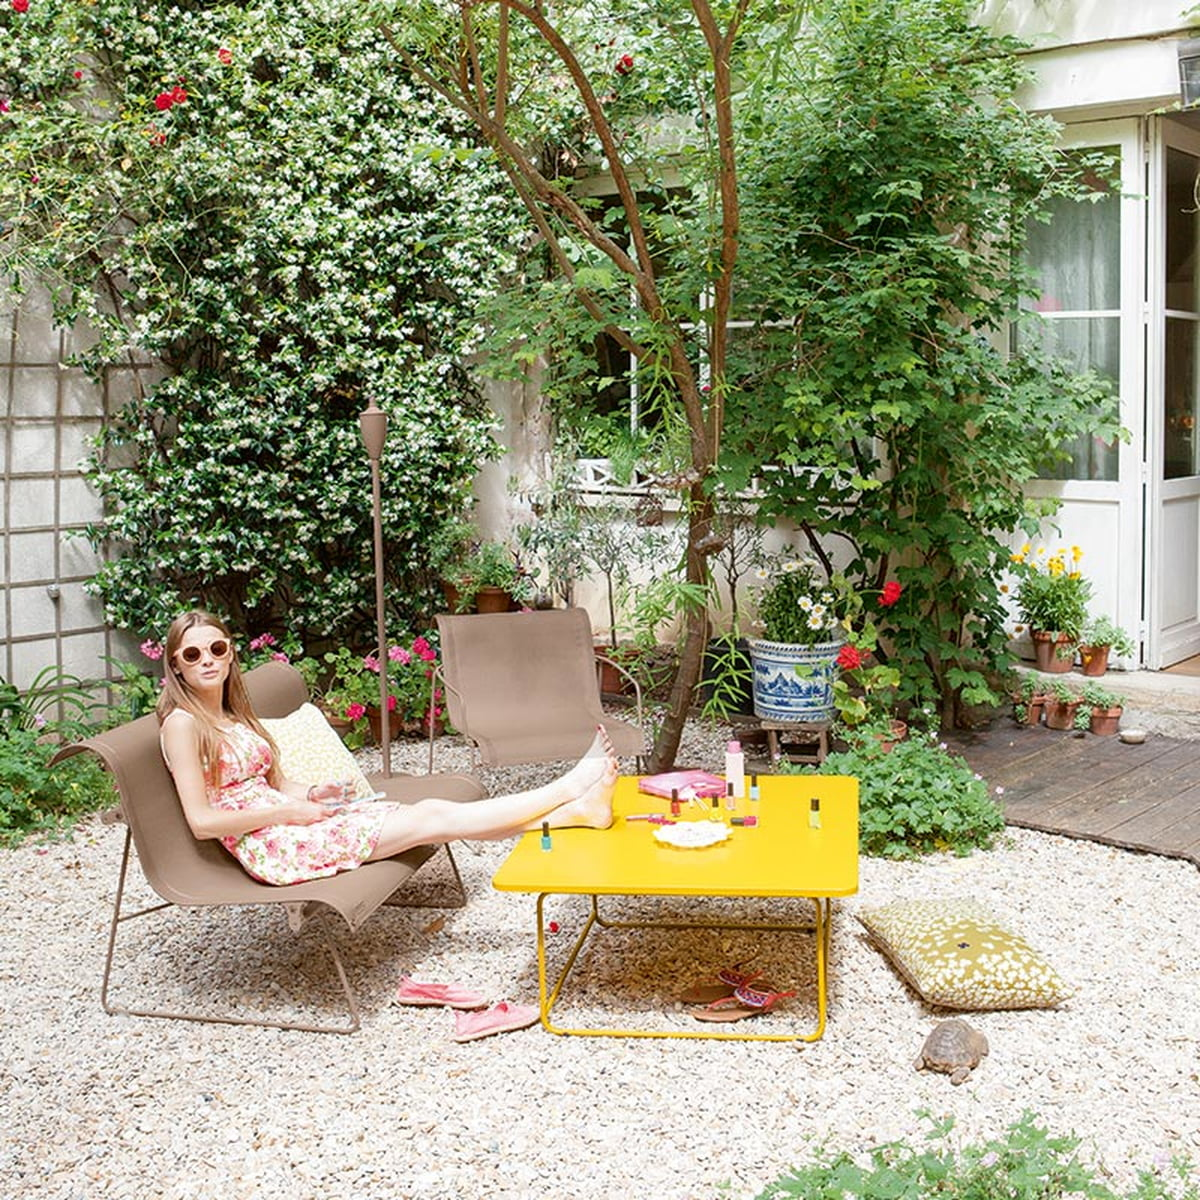 Ellipse Collection And Trèfle Outdoor Cushions From Fermob